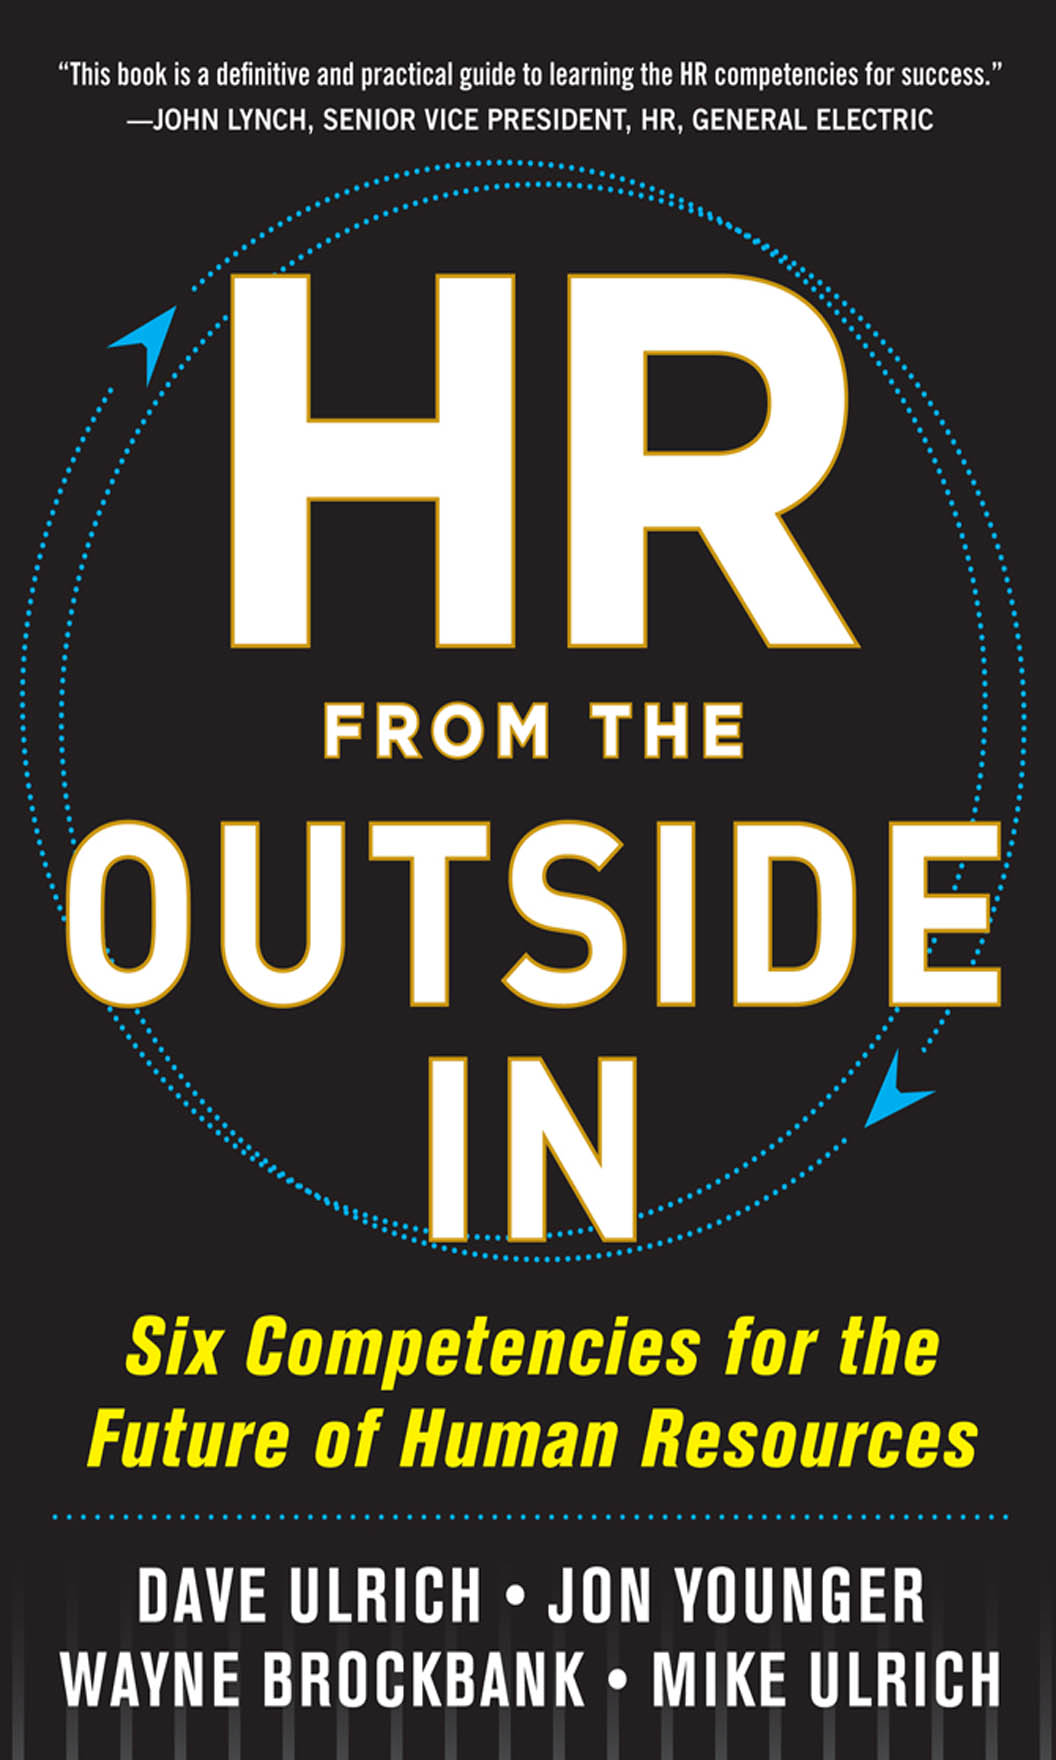 Download Ebook HR from the Outside In: Six Competencies for the Future of Human Resources by David Ulrich Pdf